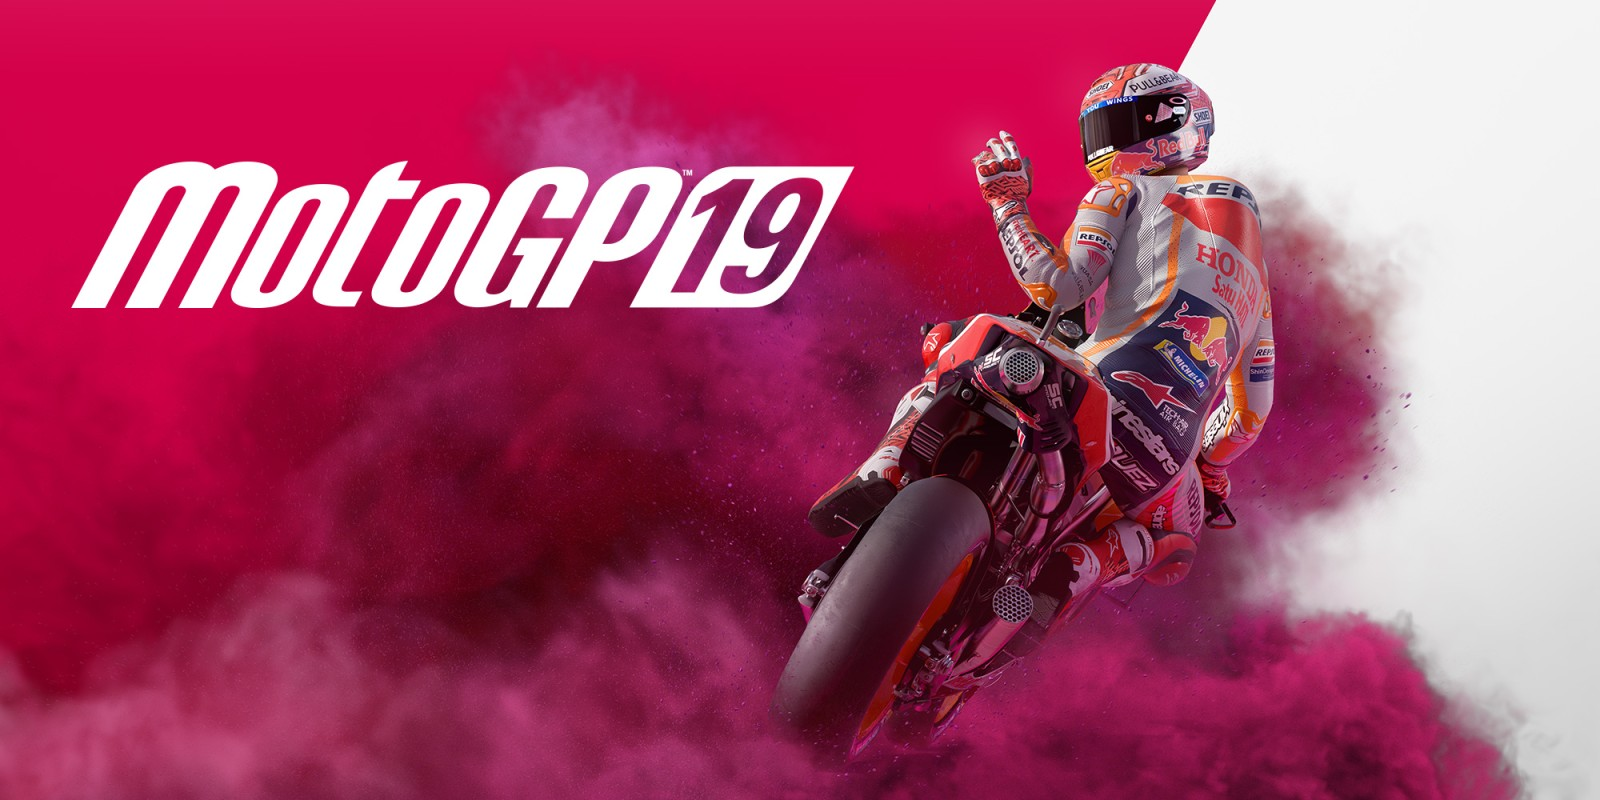 Red Bull Events >> MotoGP™19 | Nintendo Switch | Games | Nintendo